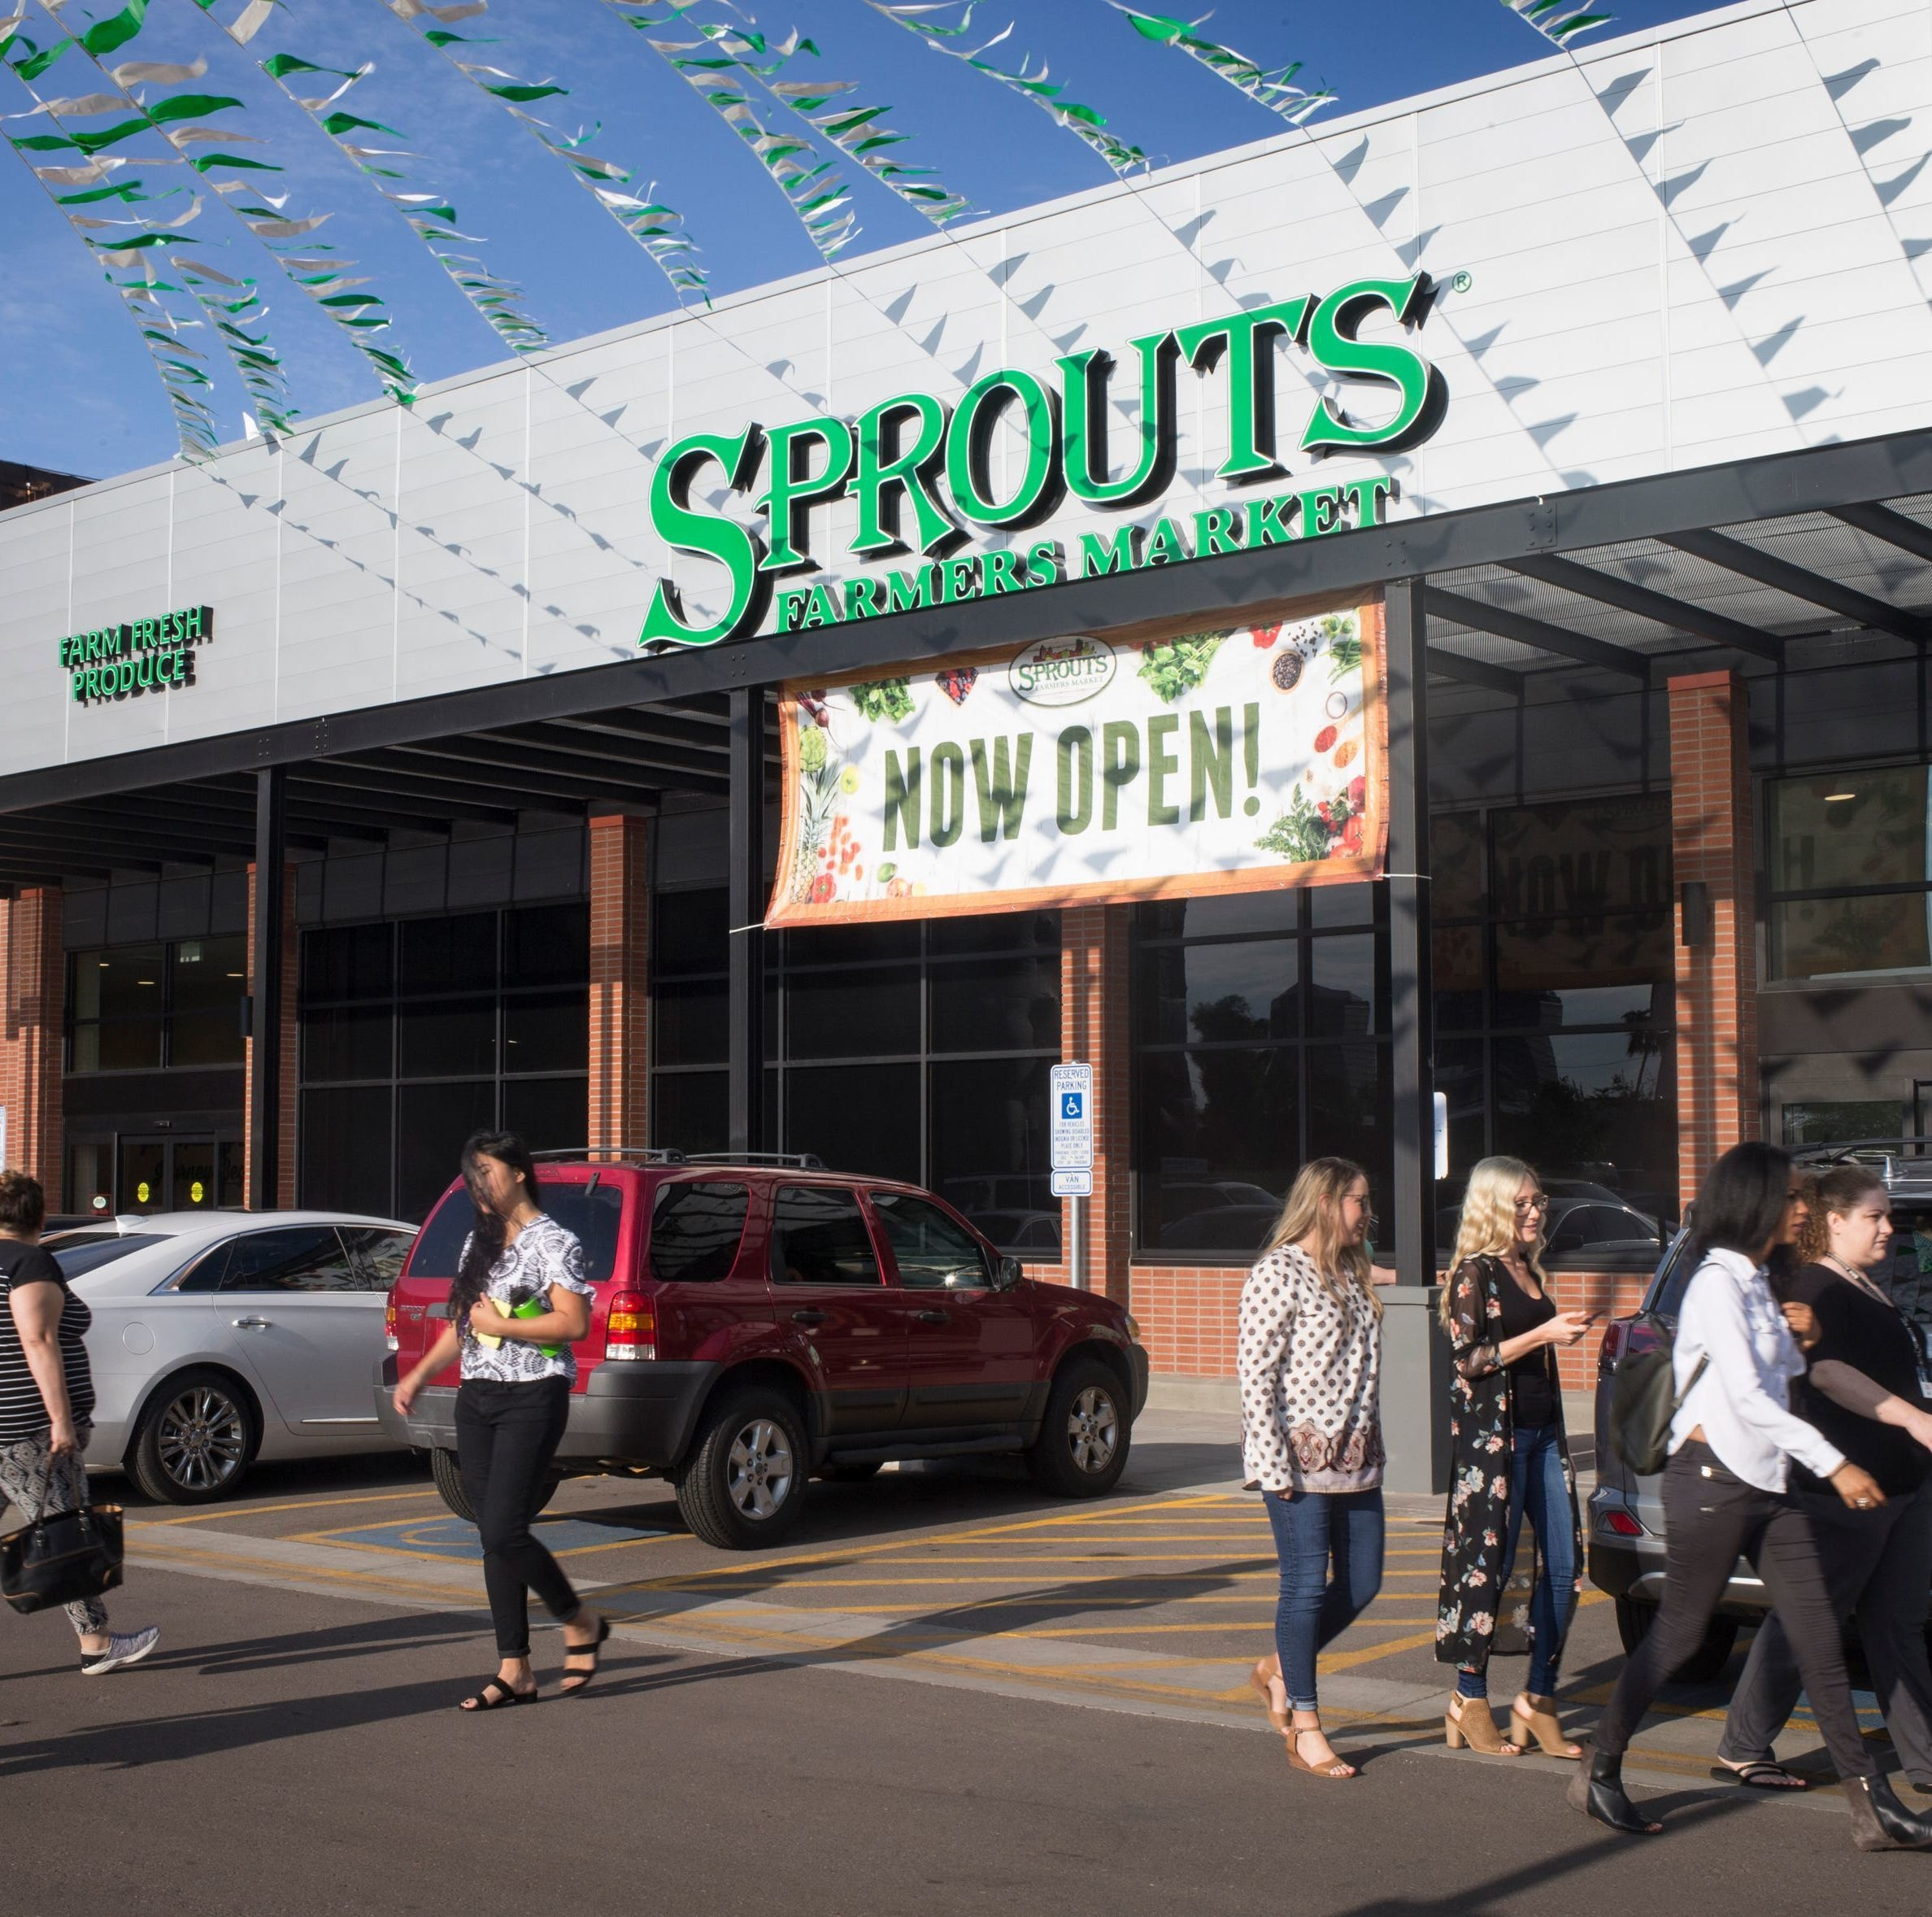 Now hiring in Arizona: Sprouts, Discover Financial adding 150 or more jobs in Phoenix area